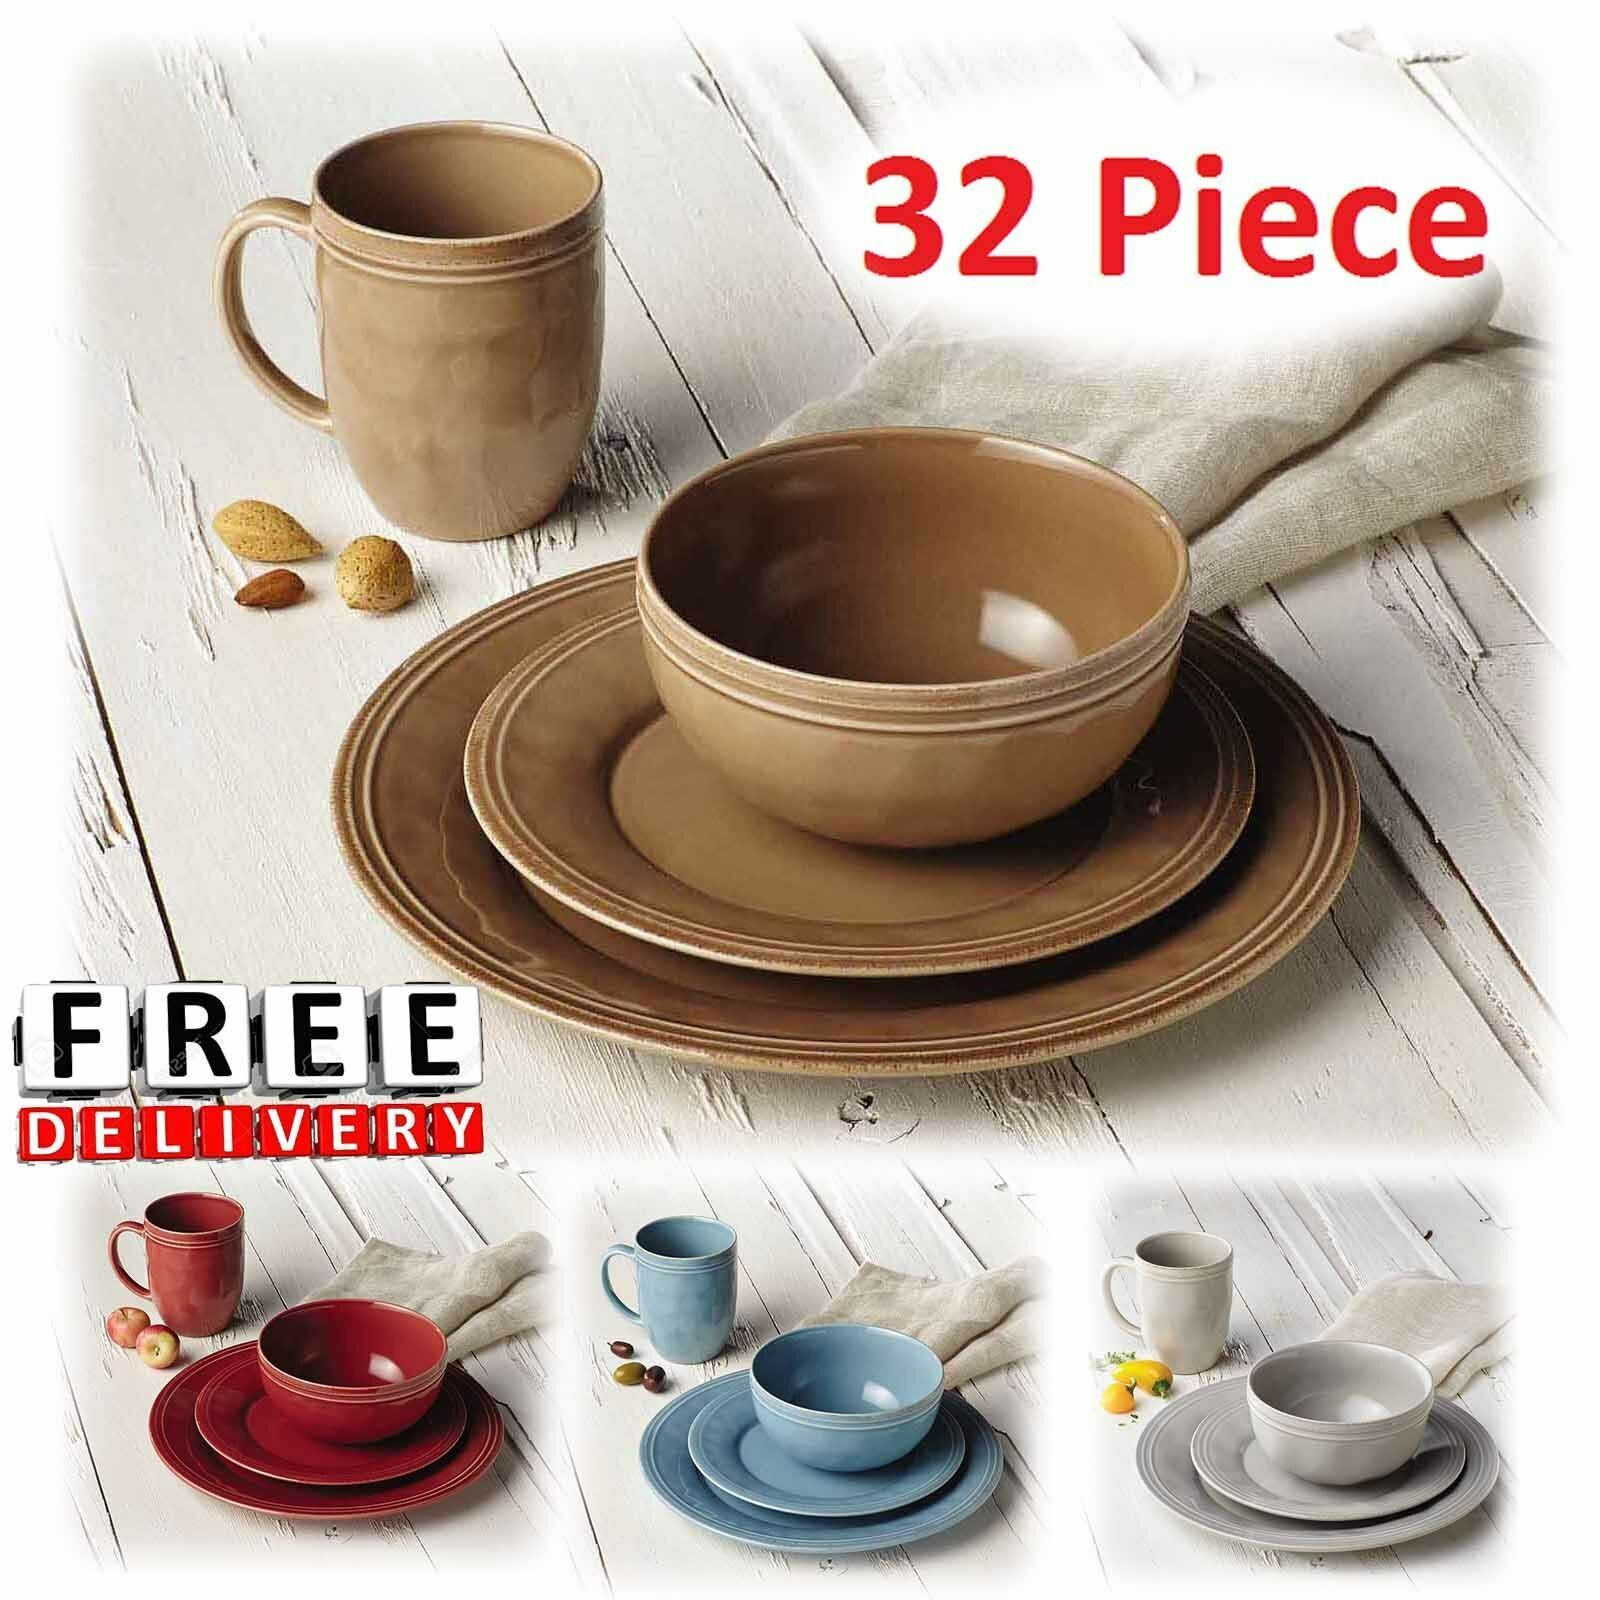 Round Dinnerware Set For 8 Stoneware Kitchen 32Pc Plates Bowls Dishes Mugs New  - Dinnerware - Ideas of Dinnerware #Dinnerware #casualdinnerware Round Dinnerware Set For 8 Stoneware Kitchen 32Pc Plates Bowls Dishes Mugs New  - Dinnerware - Ideas of Dinnerware #Dinnerware #casualdinnerware